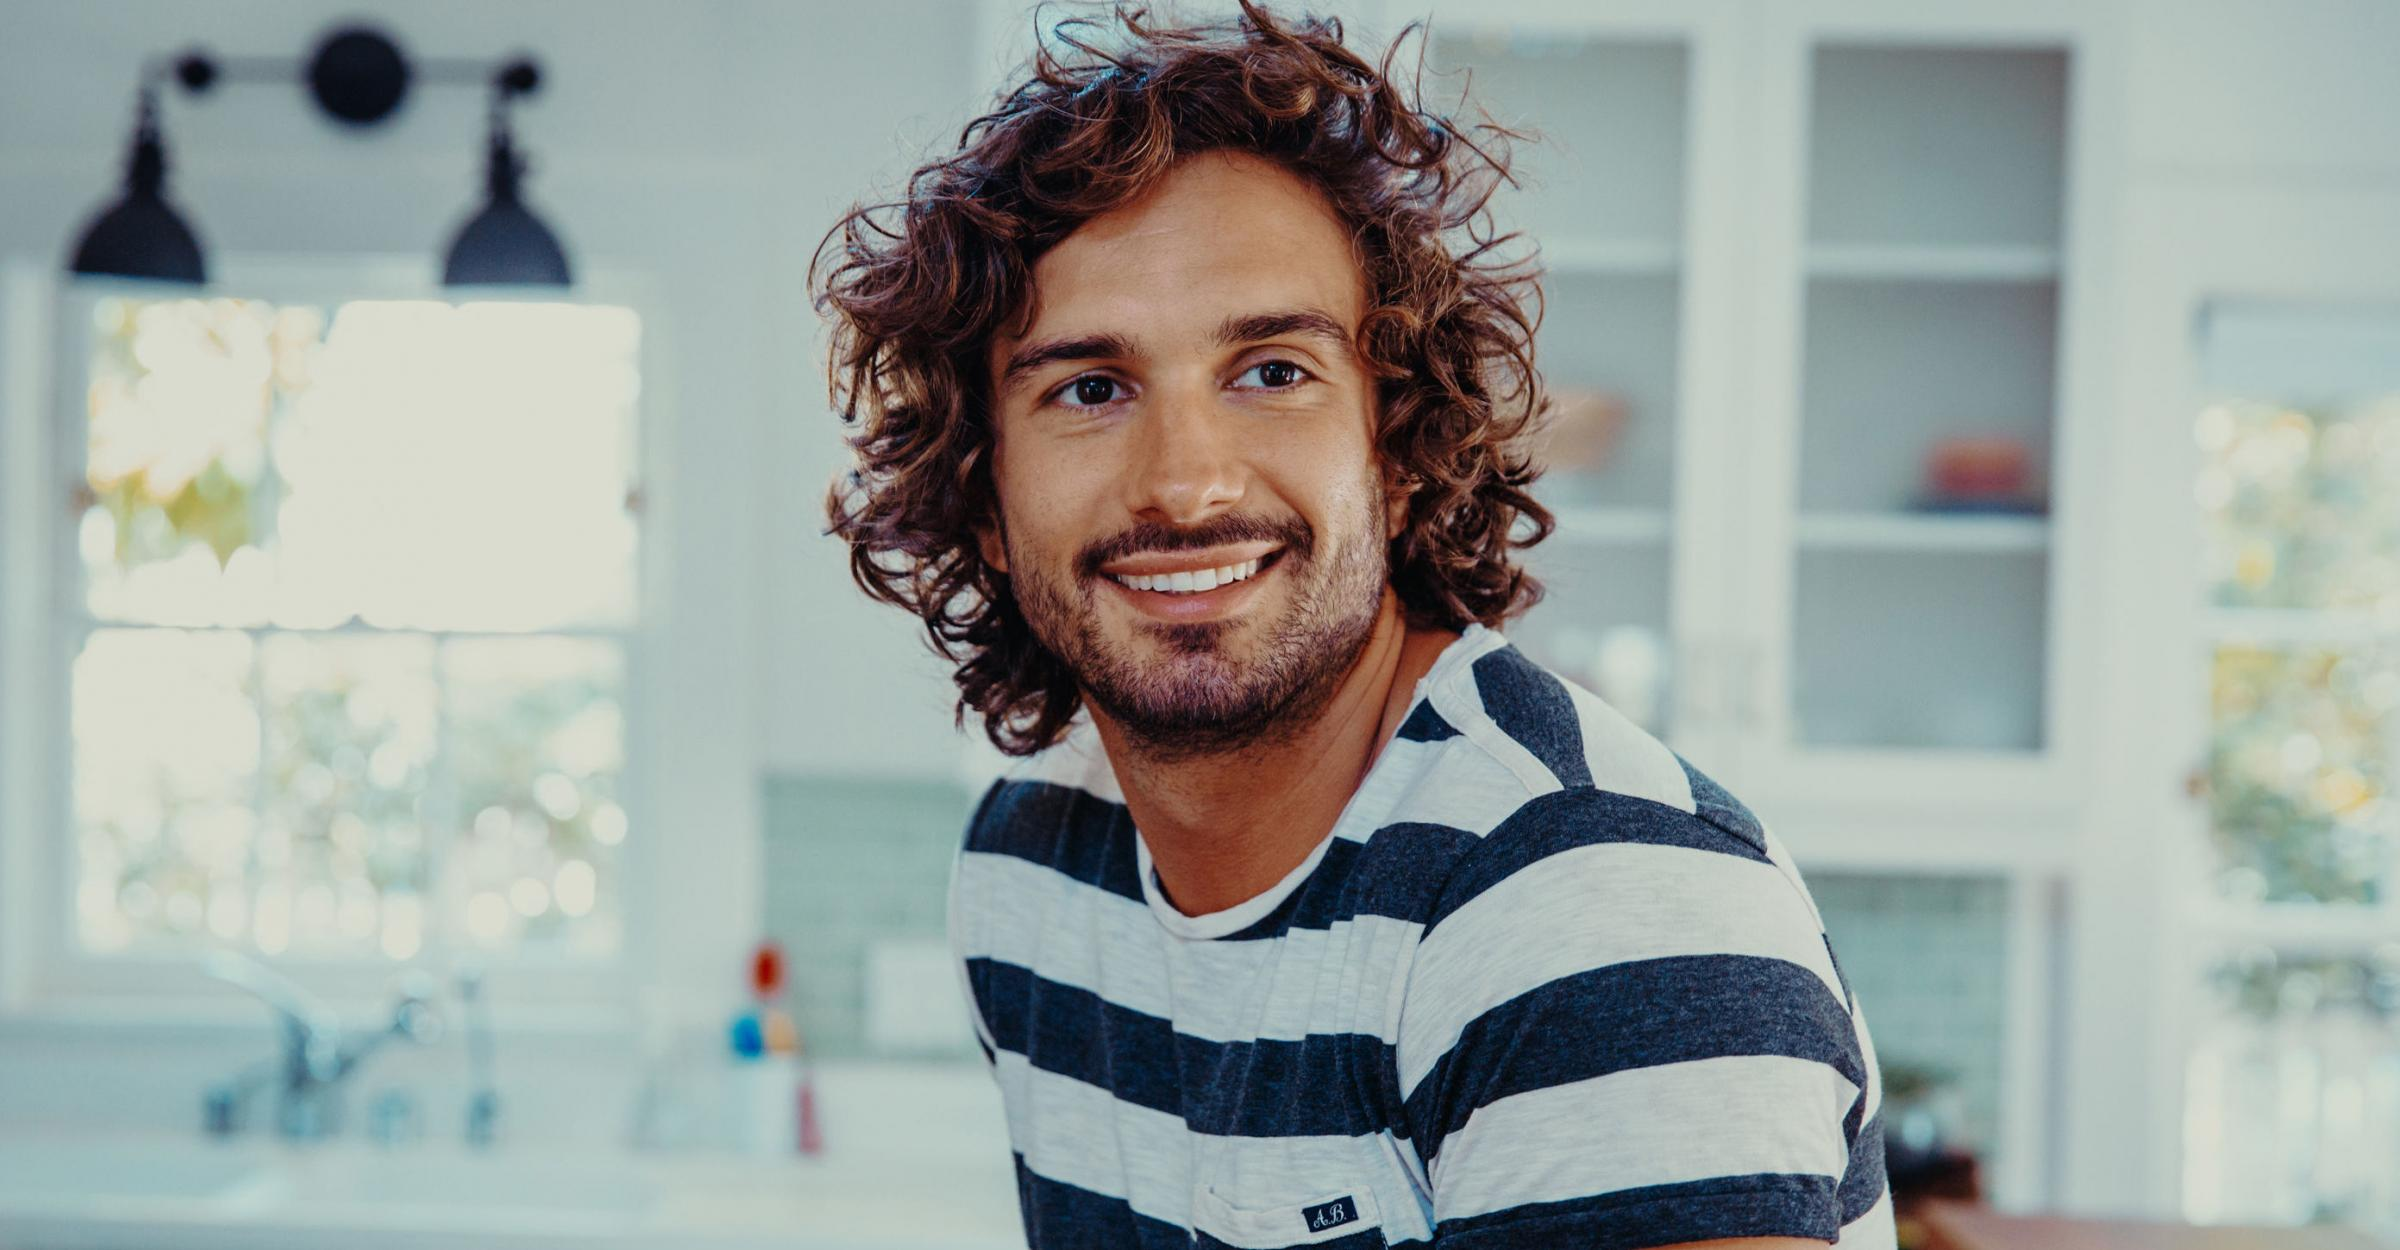 Undated Handout Photo of The Body Coach Joe Wicks at home. See PA Feature FOOD Joe Wicks. Picture credit should read: PA Photo/Conor McDonnell. WARNING: This picture must only be used to accompany PA Feature FOOD Joe Wicks..